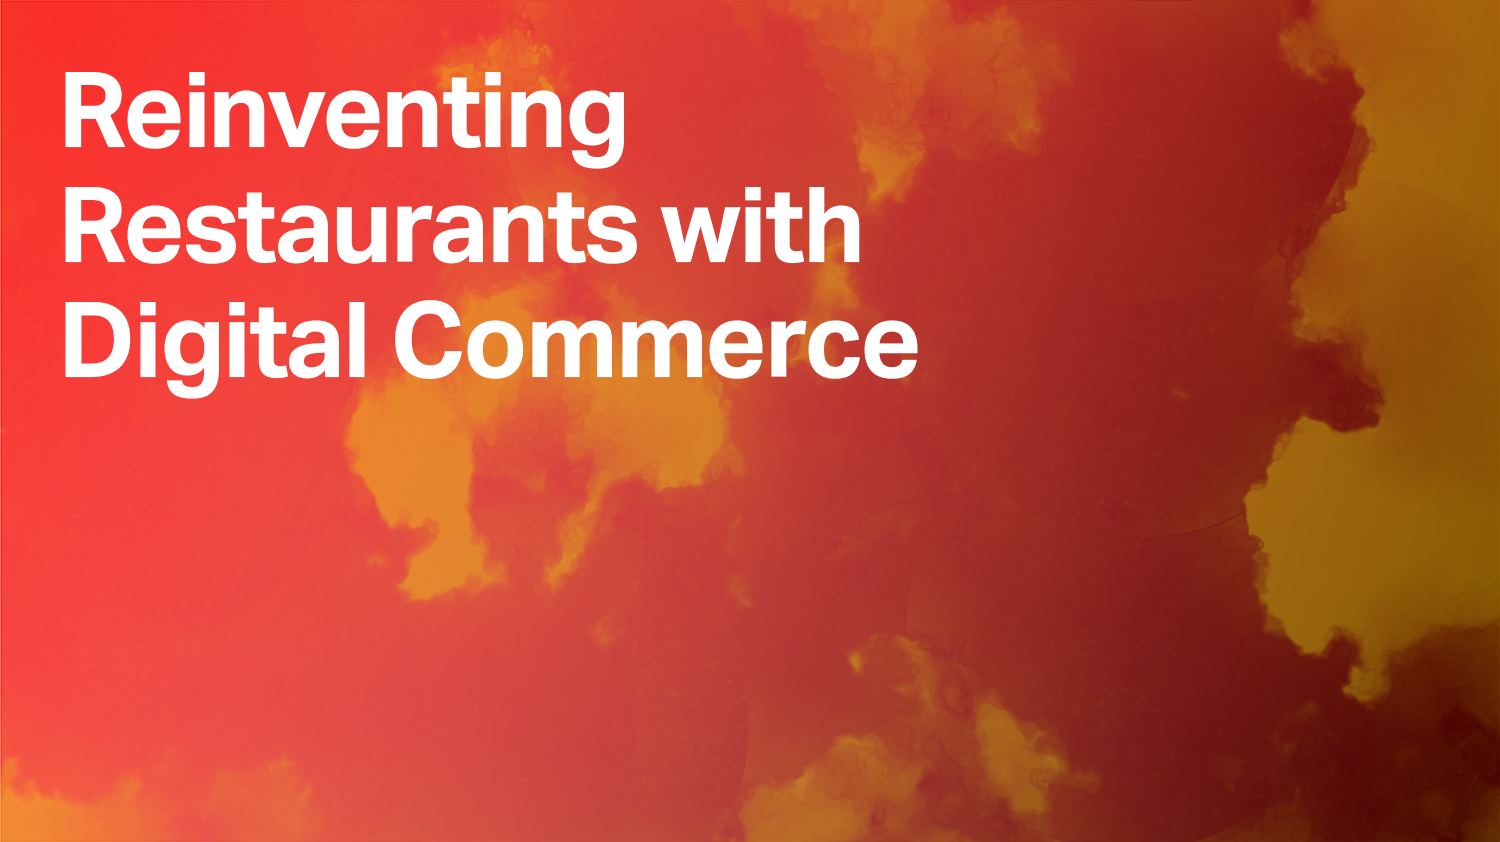 Reinventing Restaurants with Digital Commerce